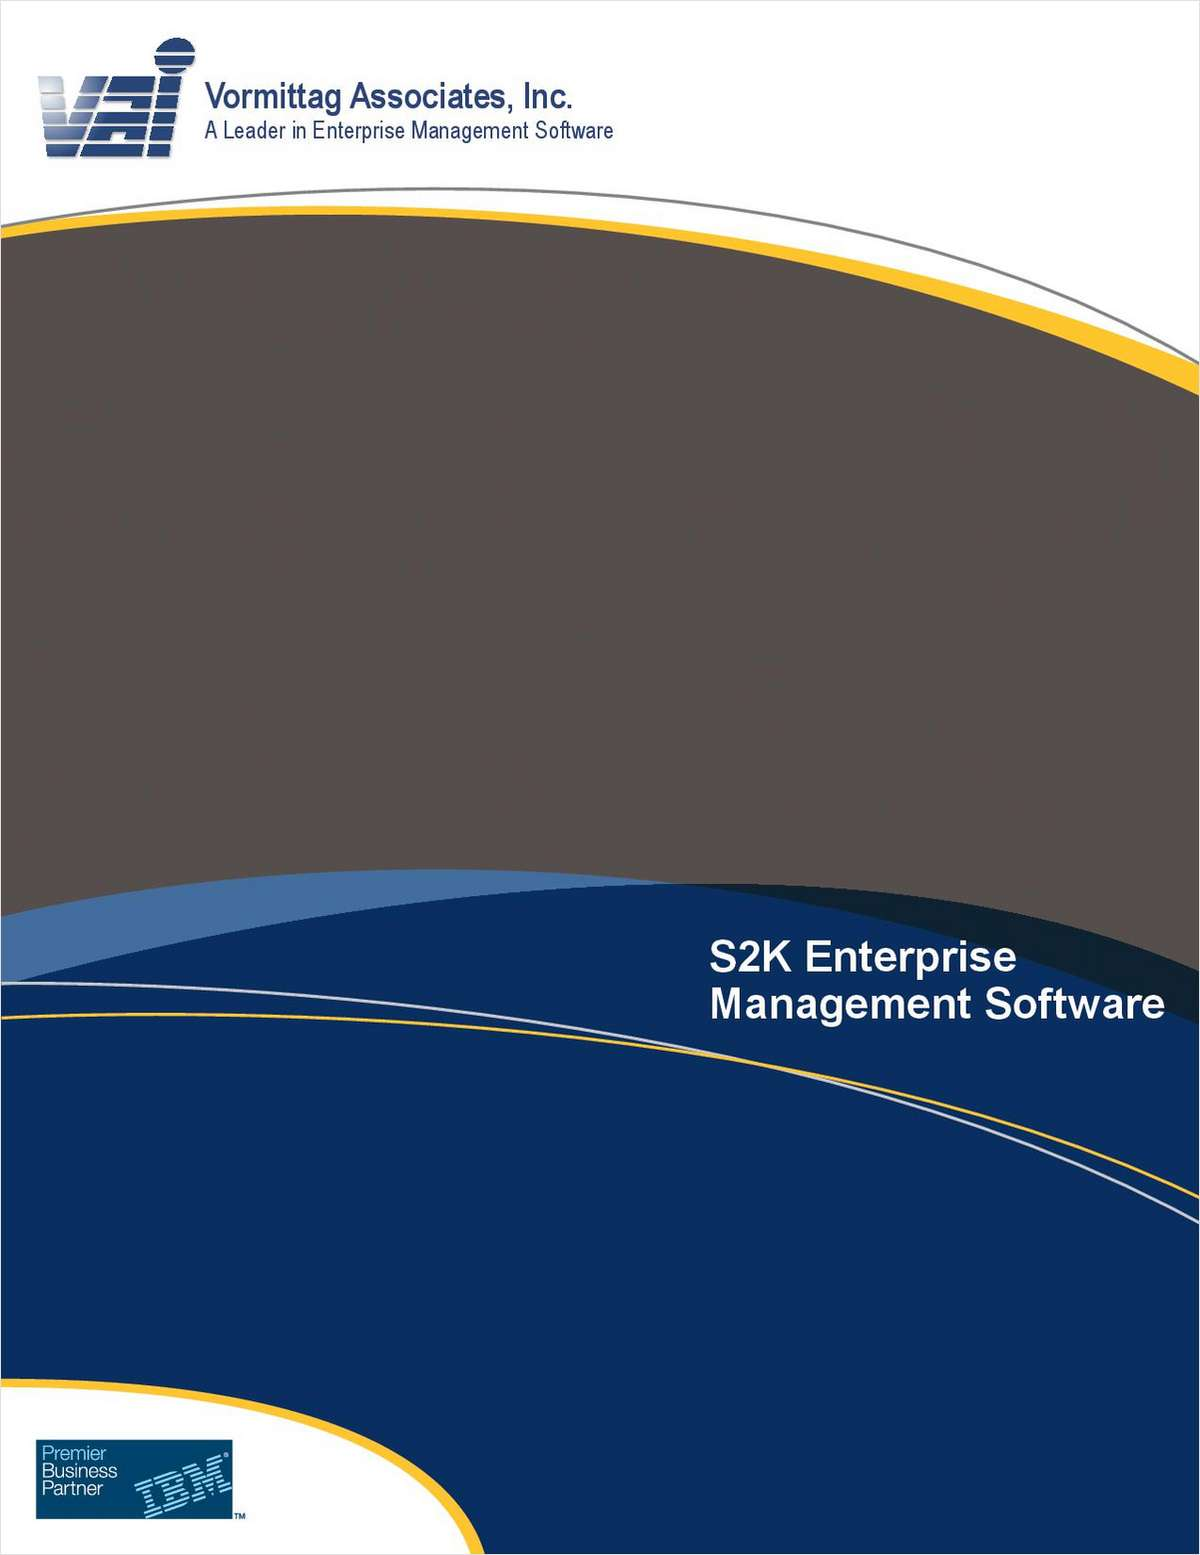 The Next Generation in ERP Software